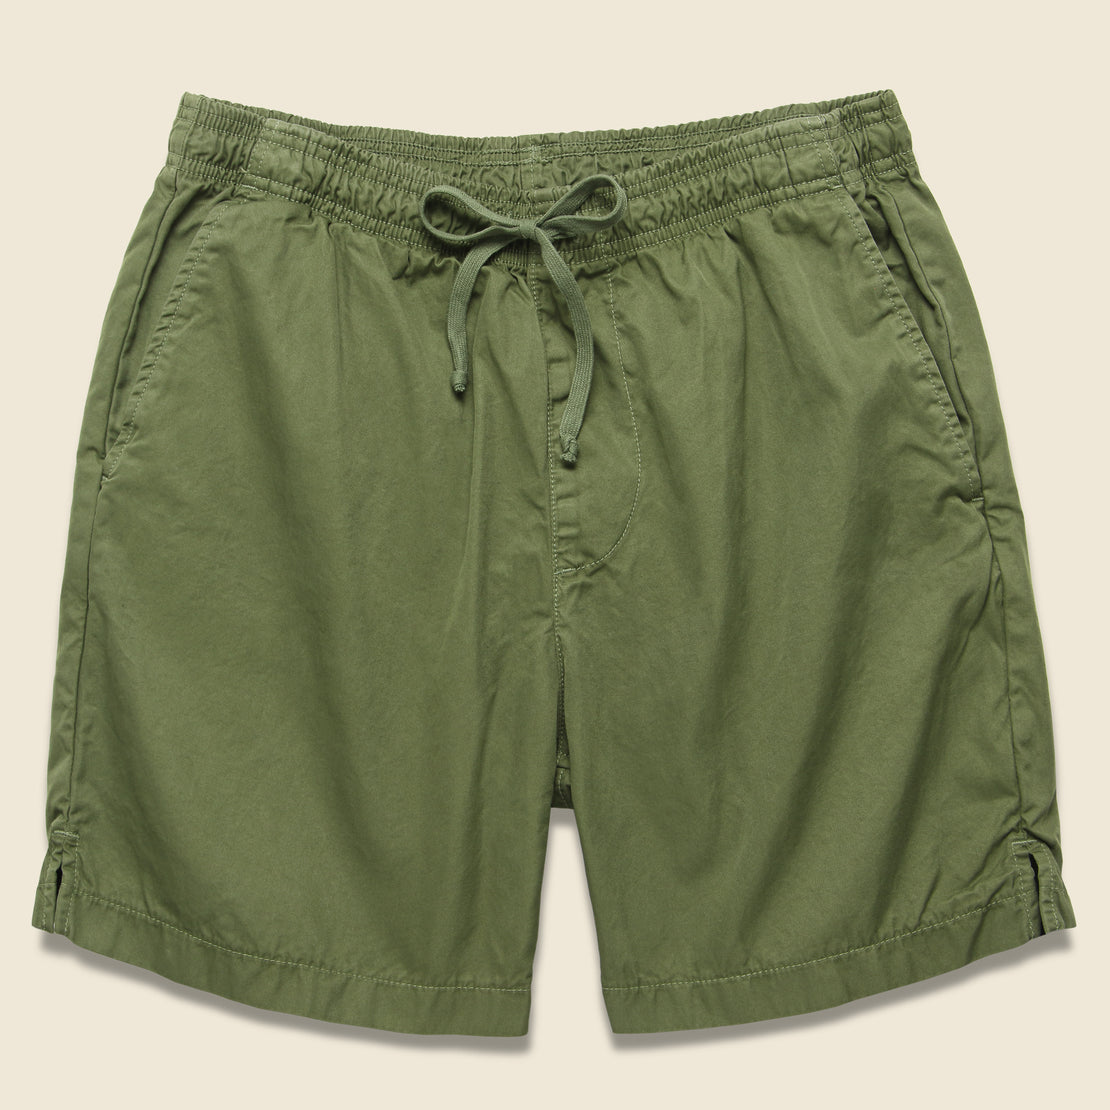 Save Khaki Light Twill Easy Short - Olive Drab